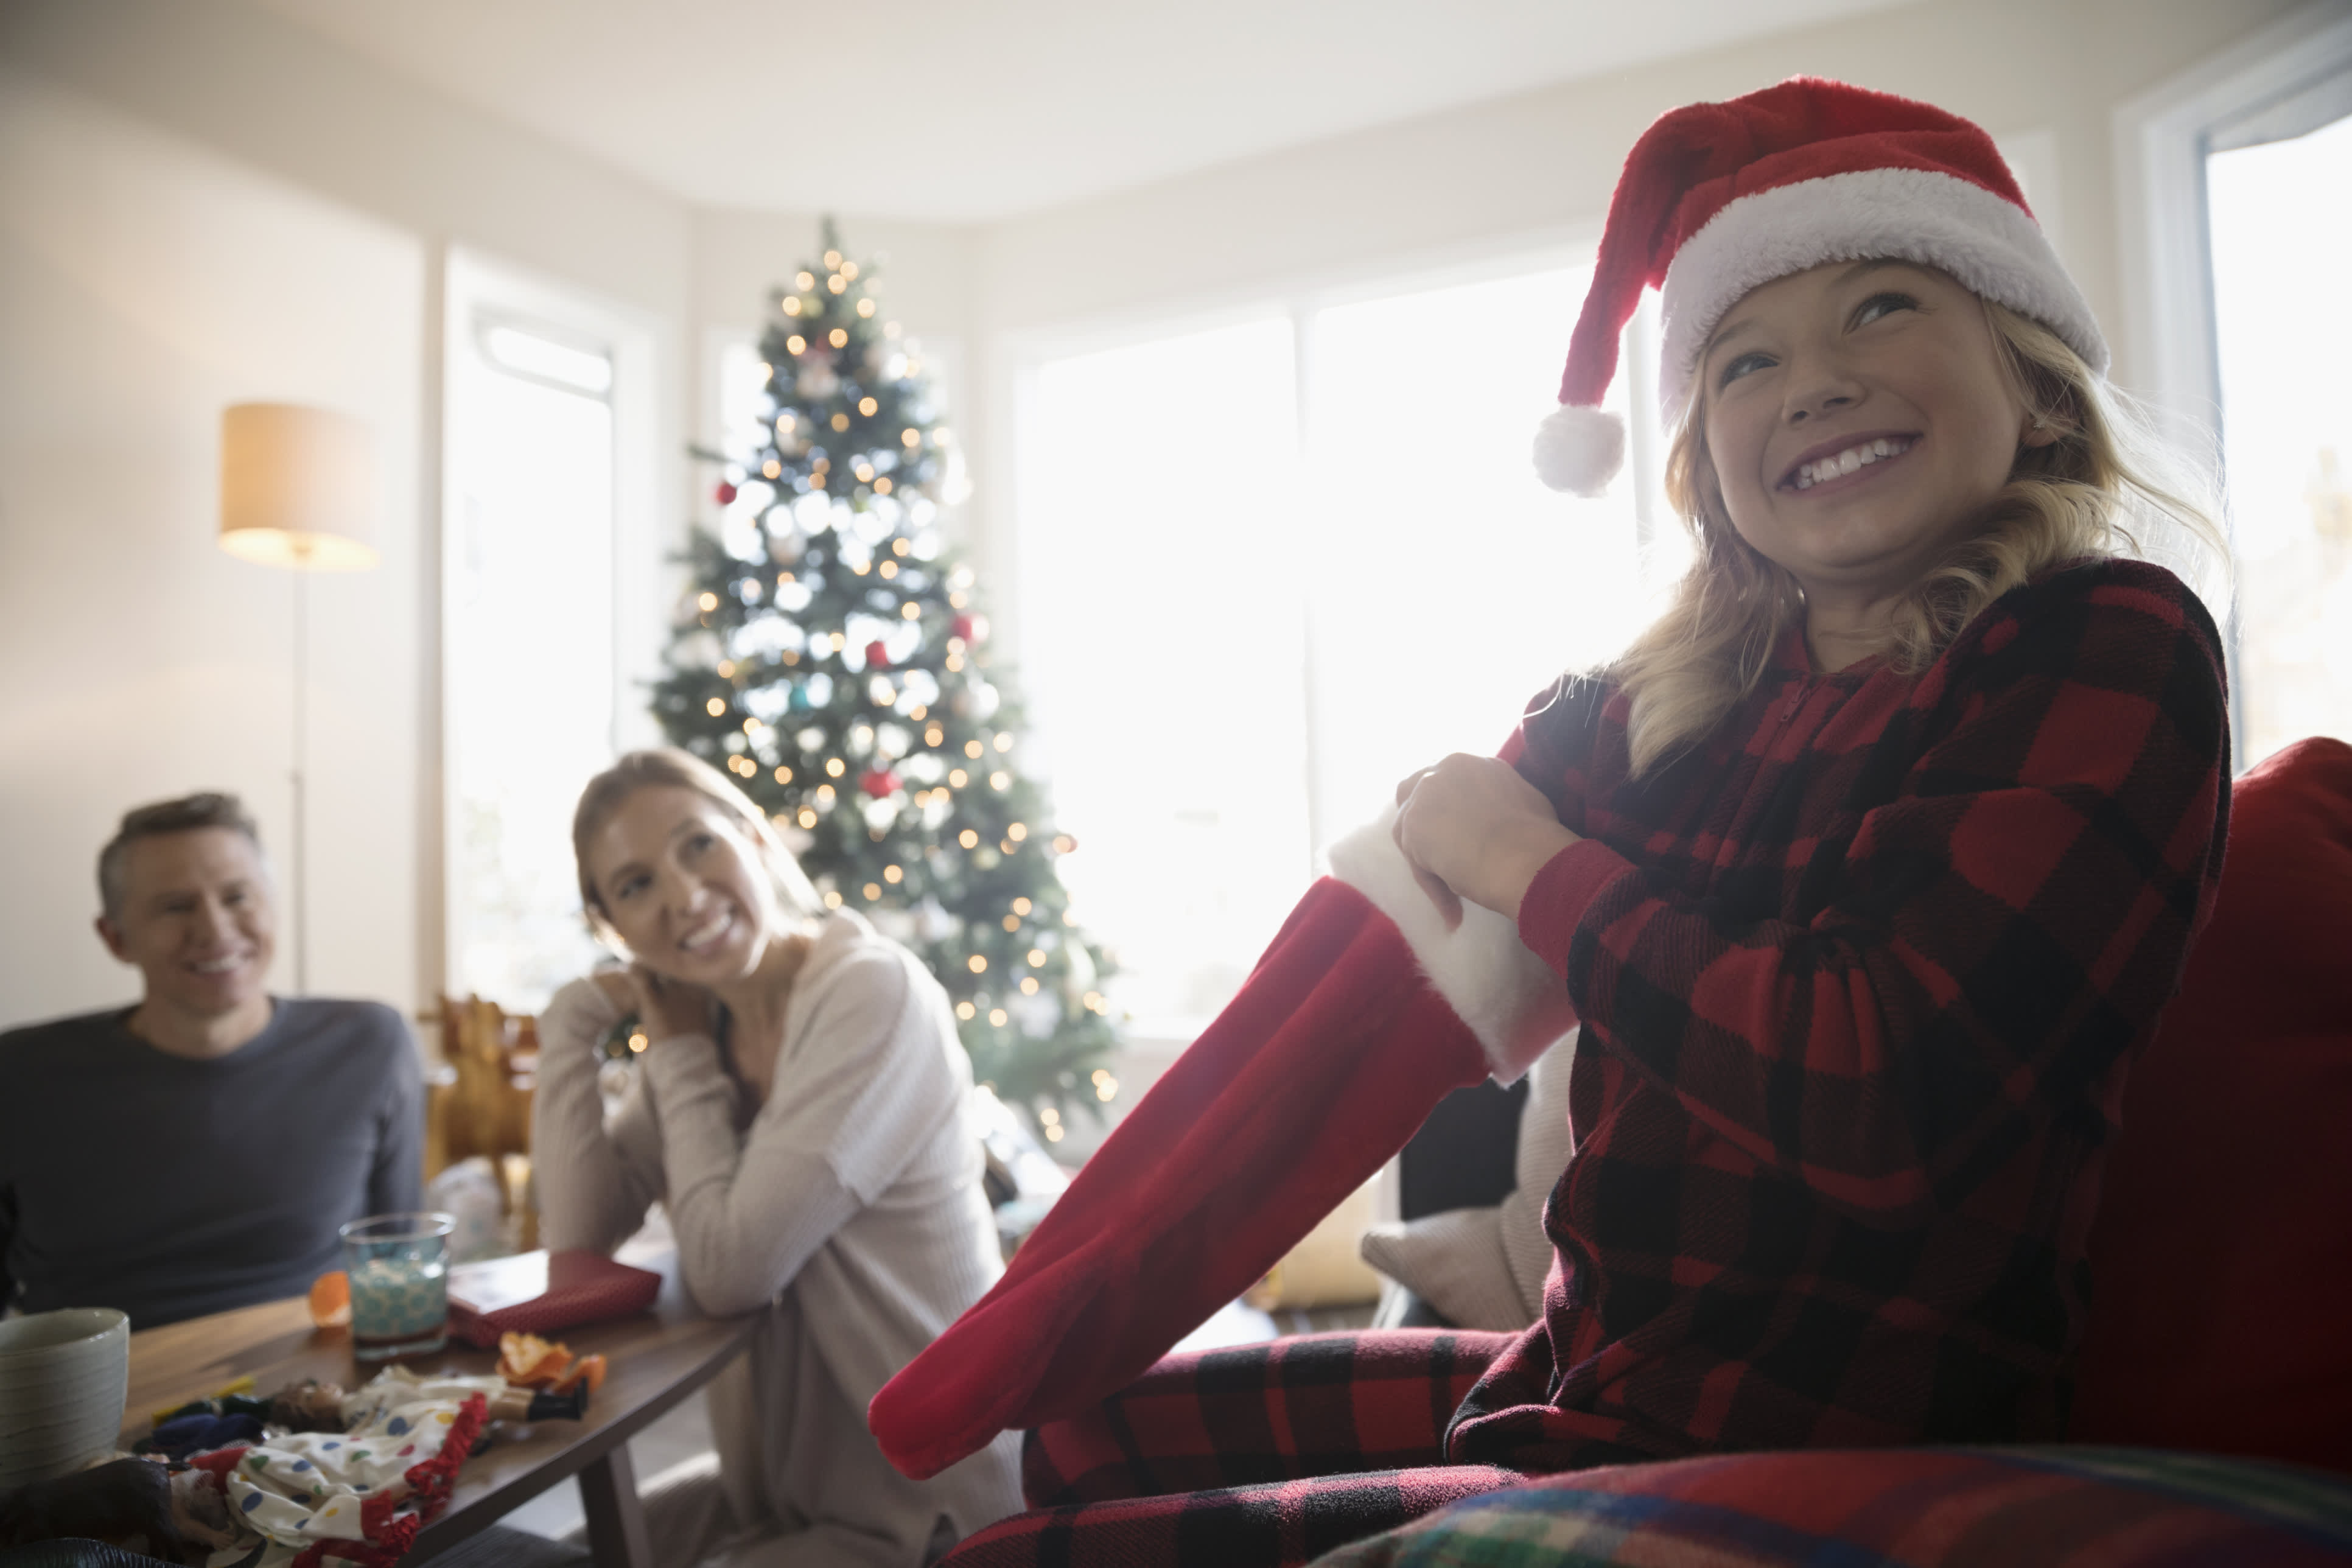 Stocking stuffers 15 holiday t ideas for under $15